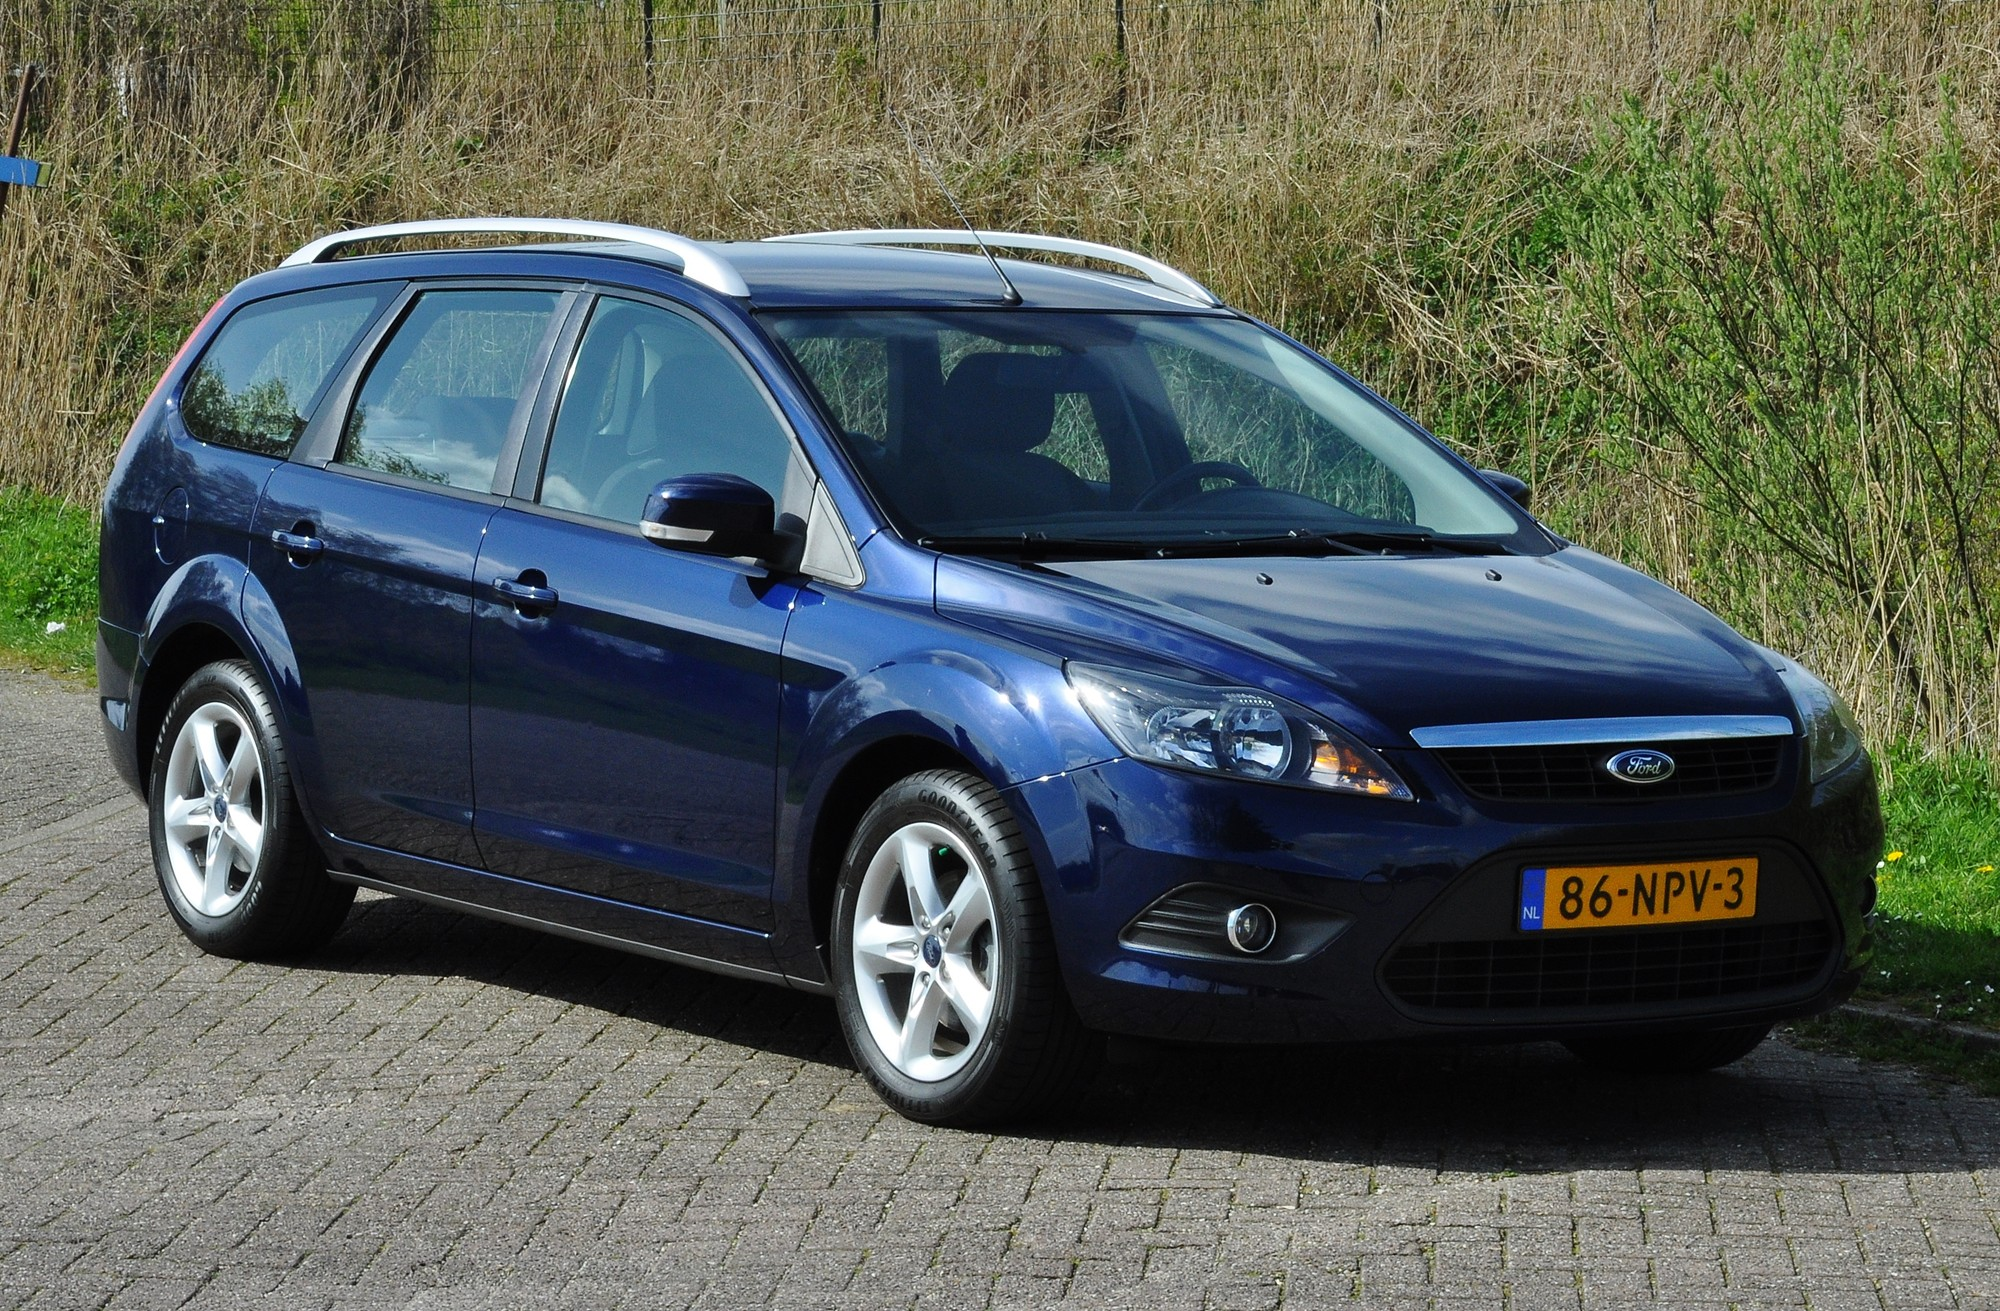 Ford Focus Wagon 1.6 16V